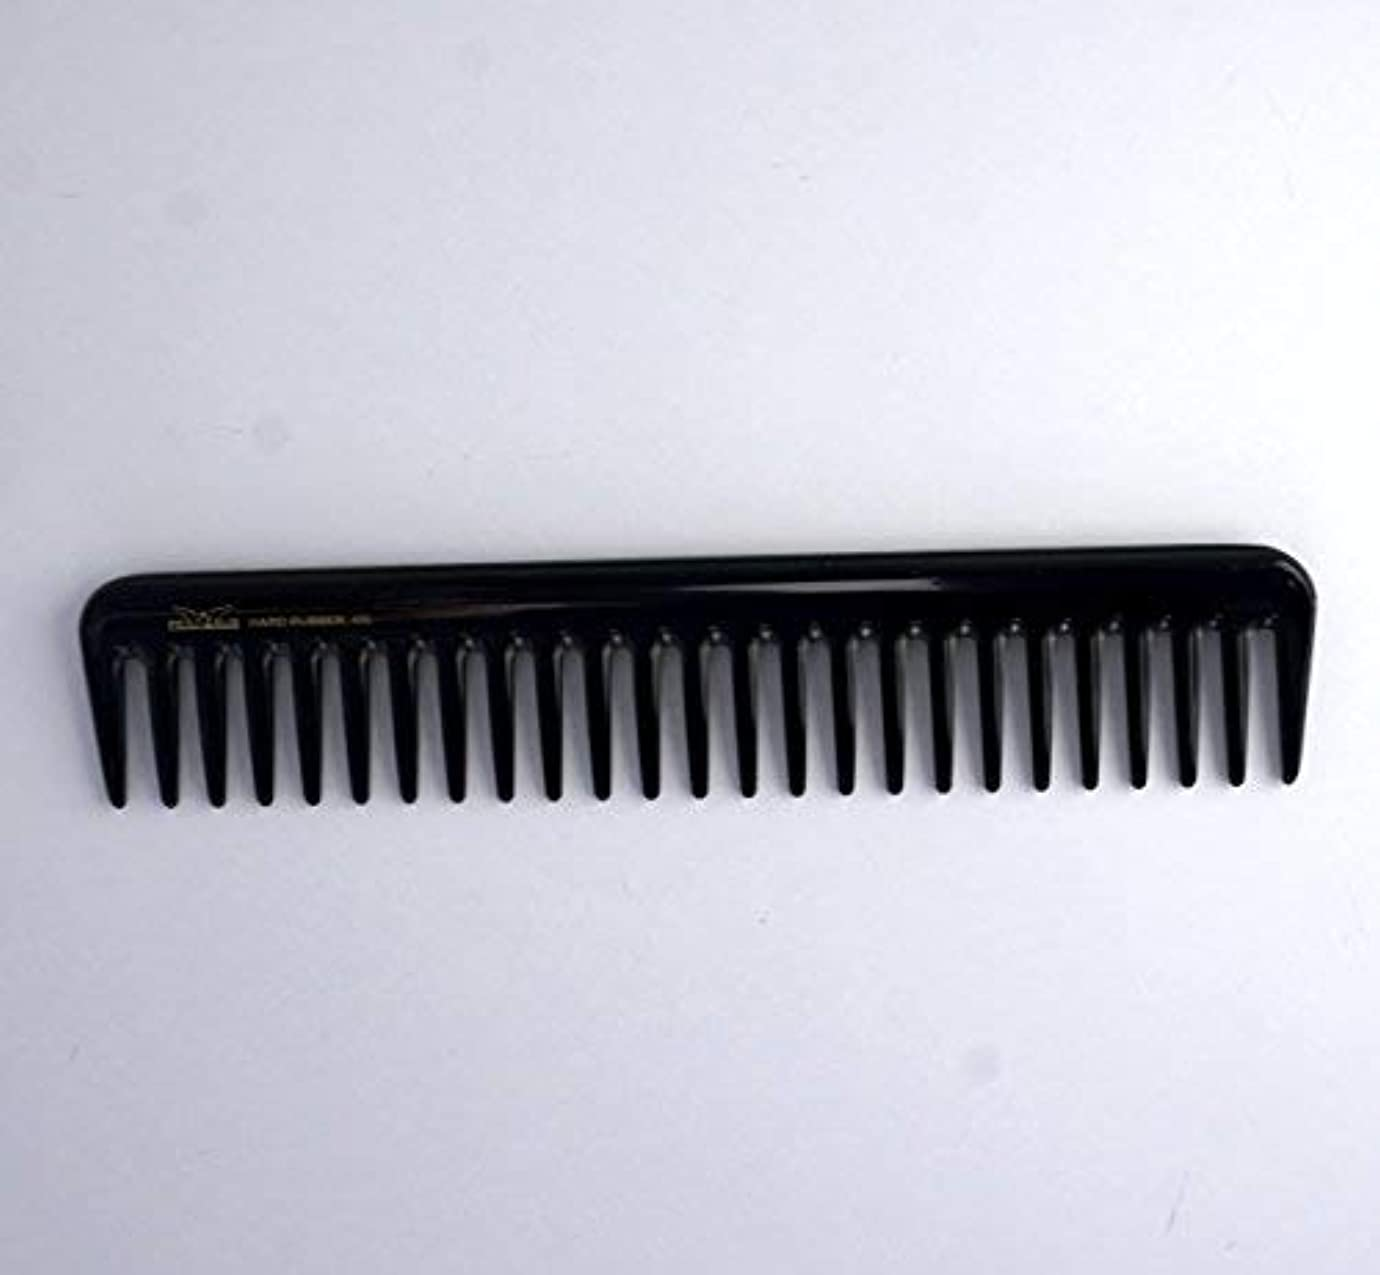 ペストリー航空便合体7in, Hard Rubber, Wide Tooth Short Styling Comb [並行輸入品]